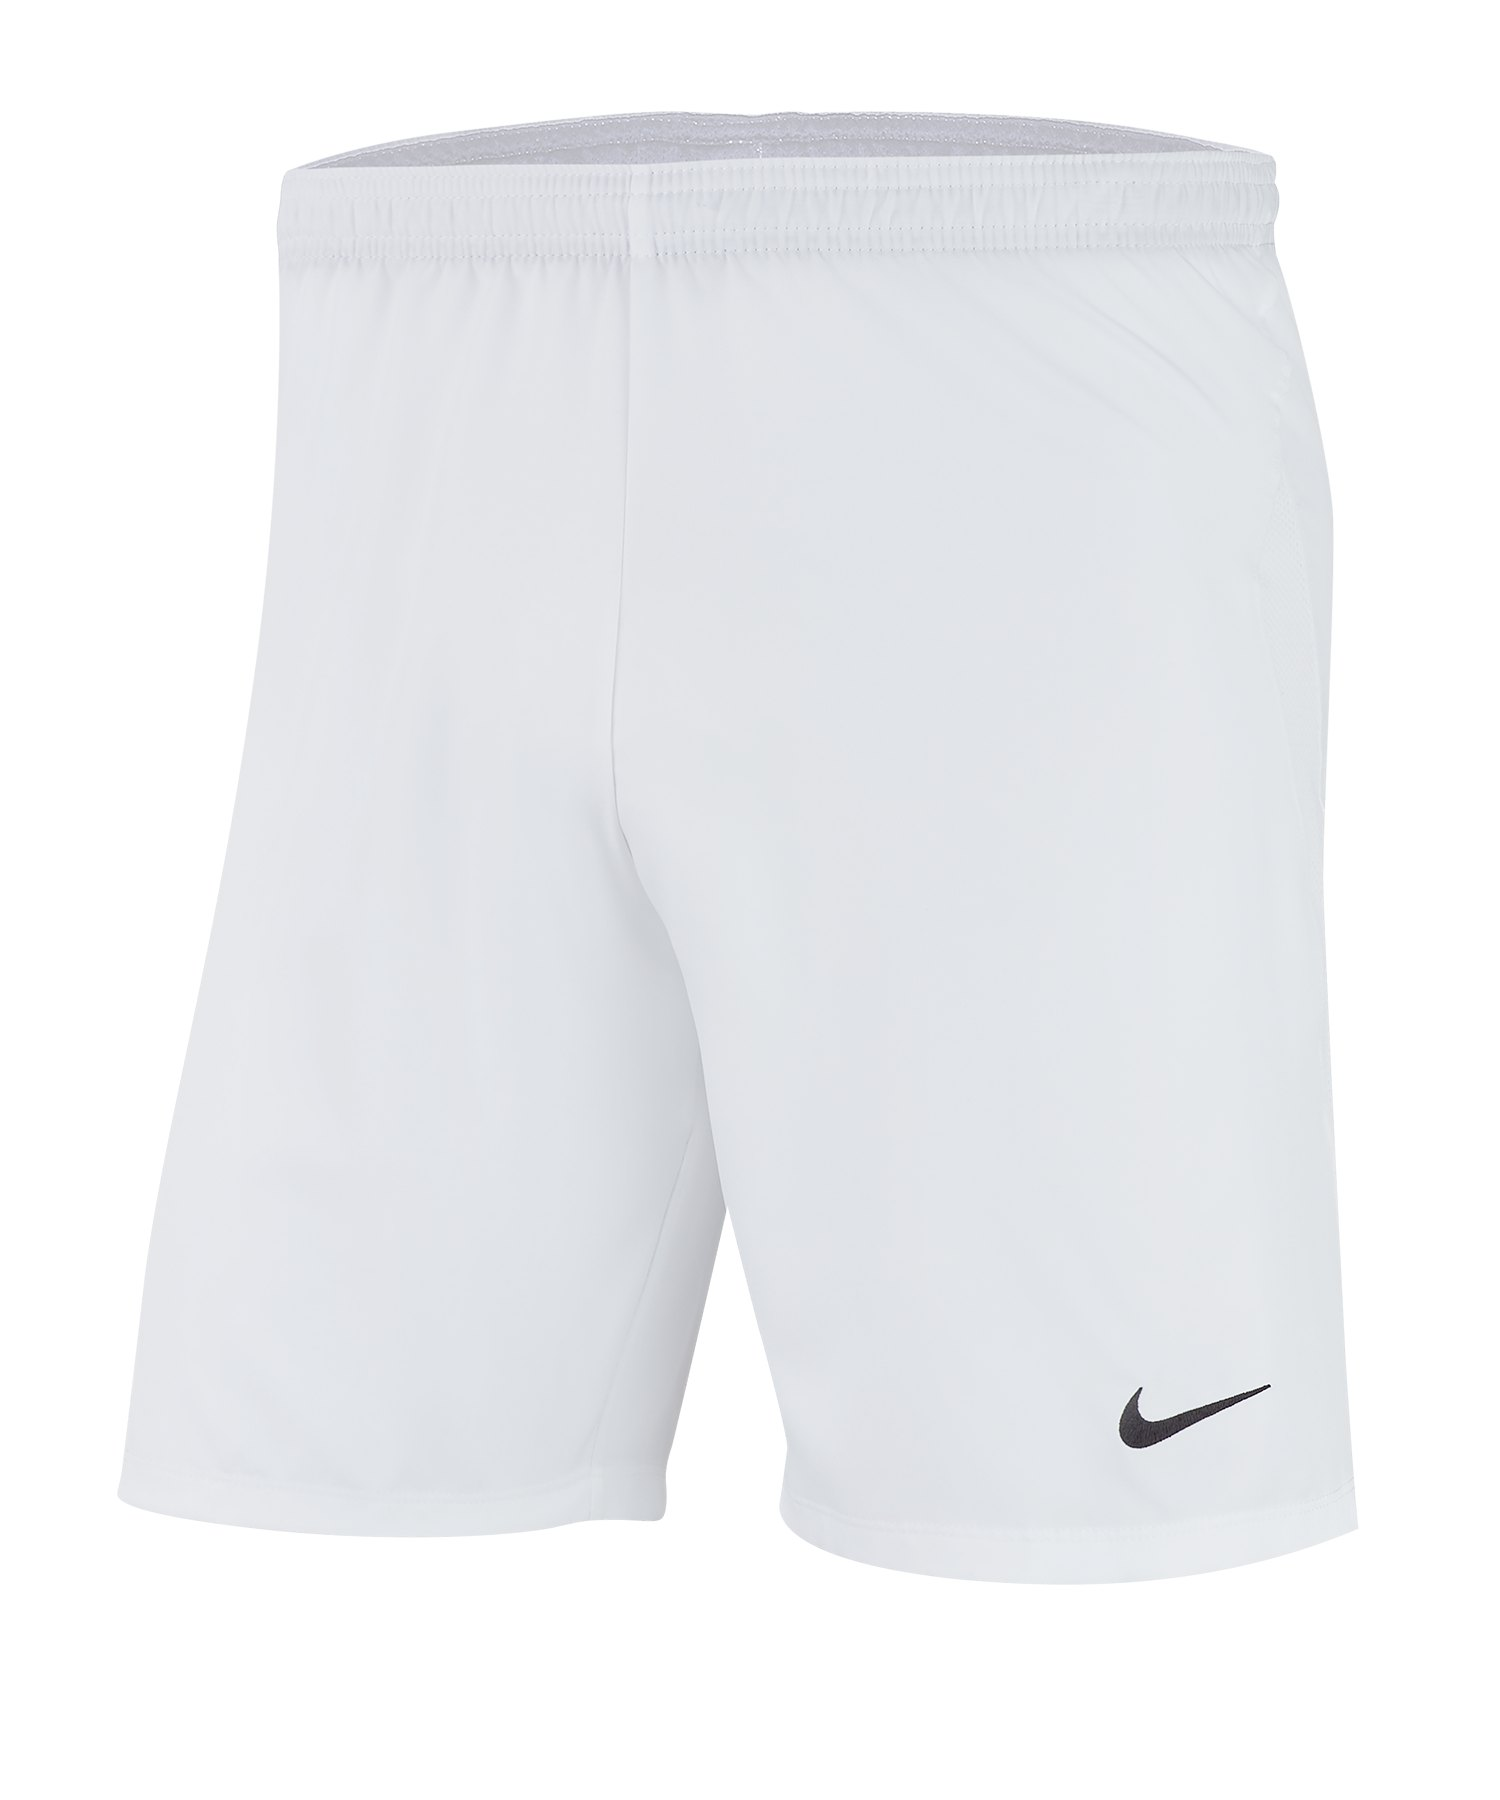 Nike Laser IV Dri-FIT Short Kids Weiss F100 - weiss